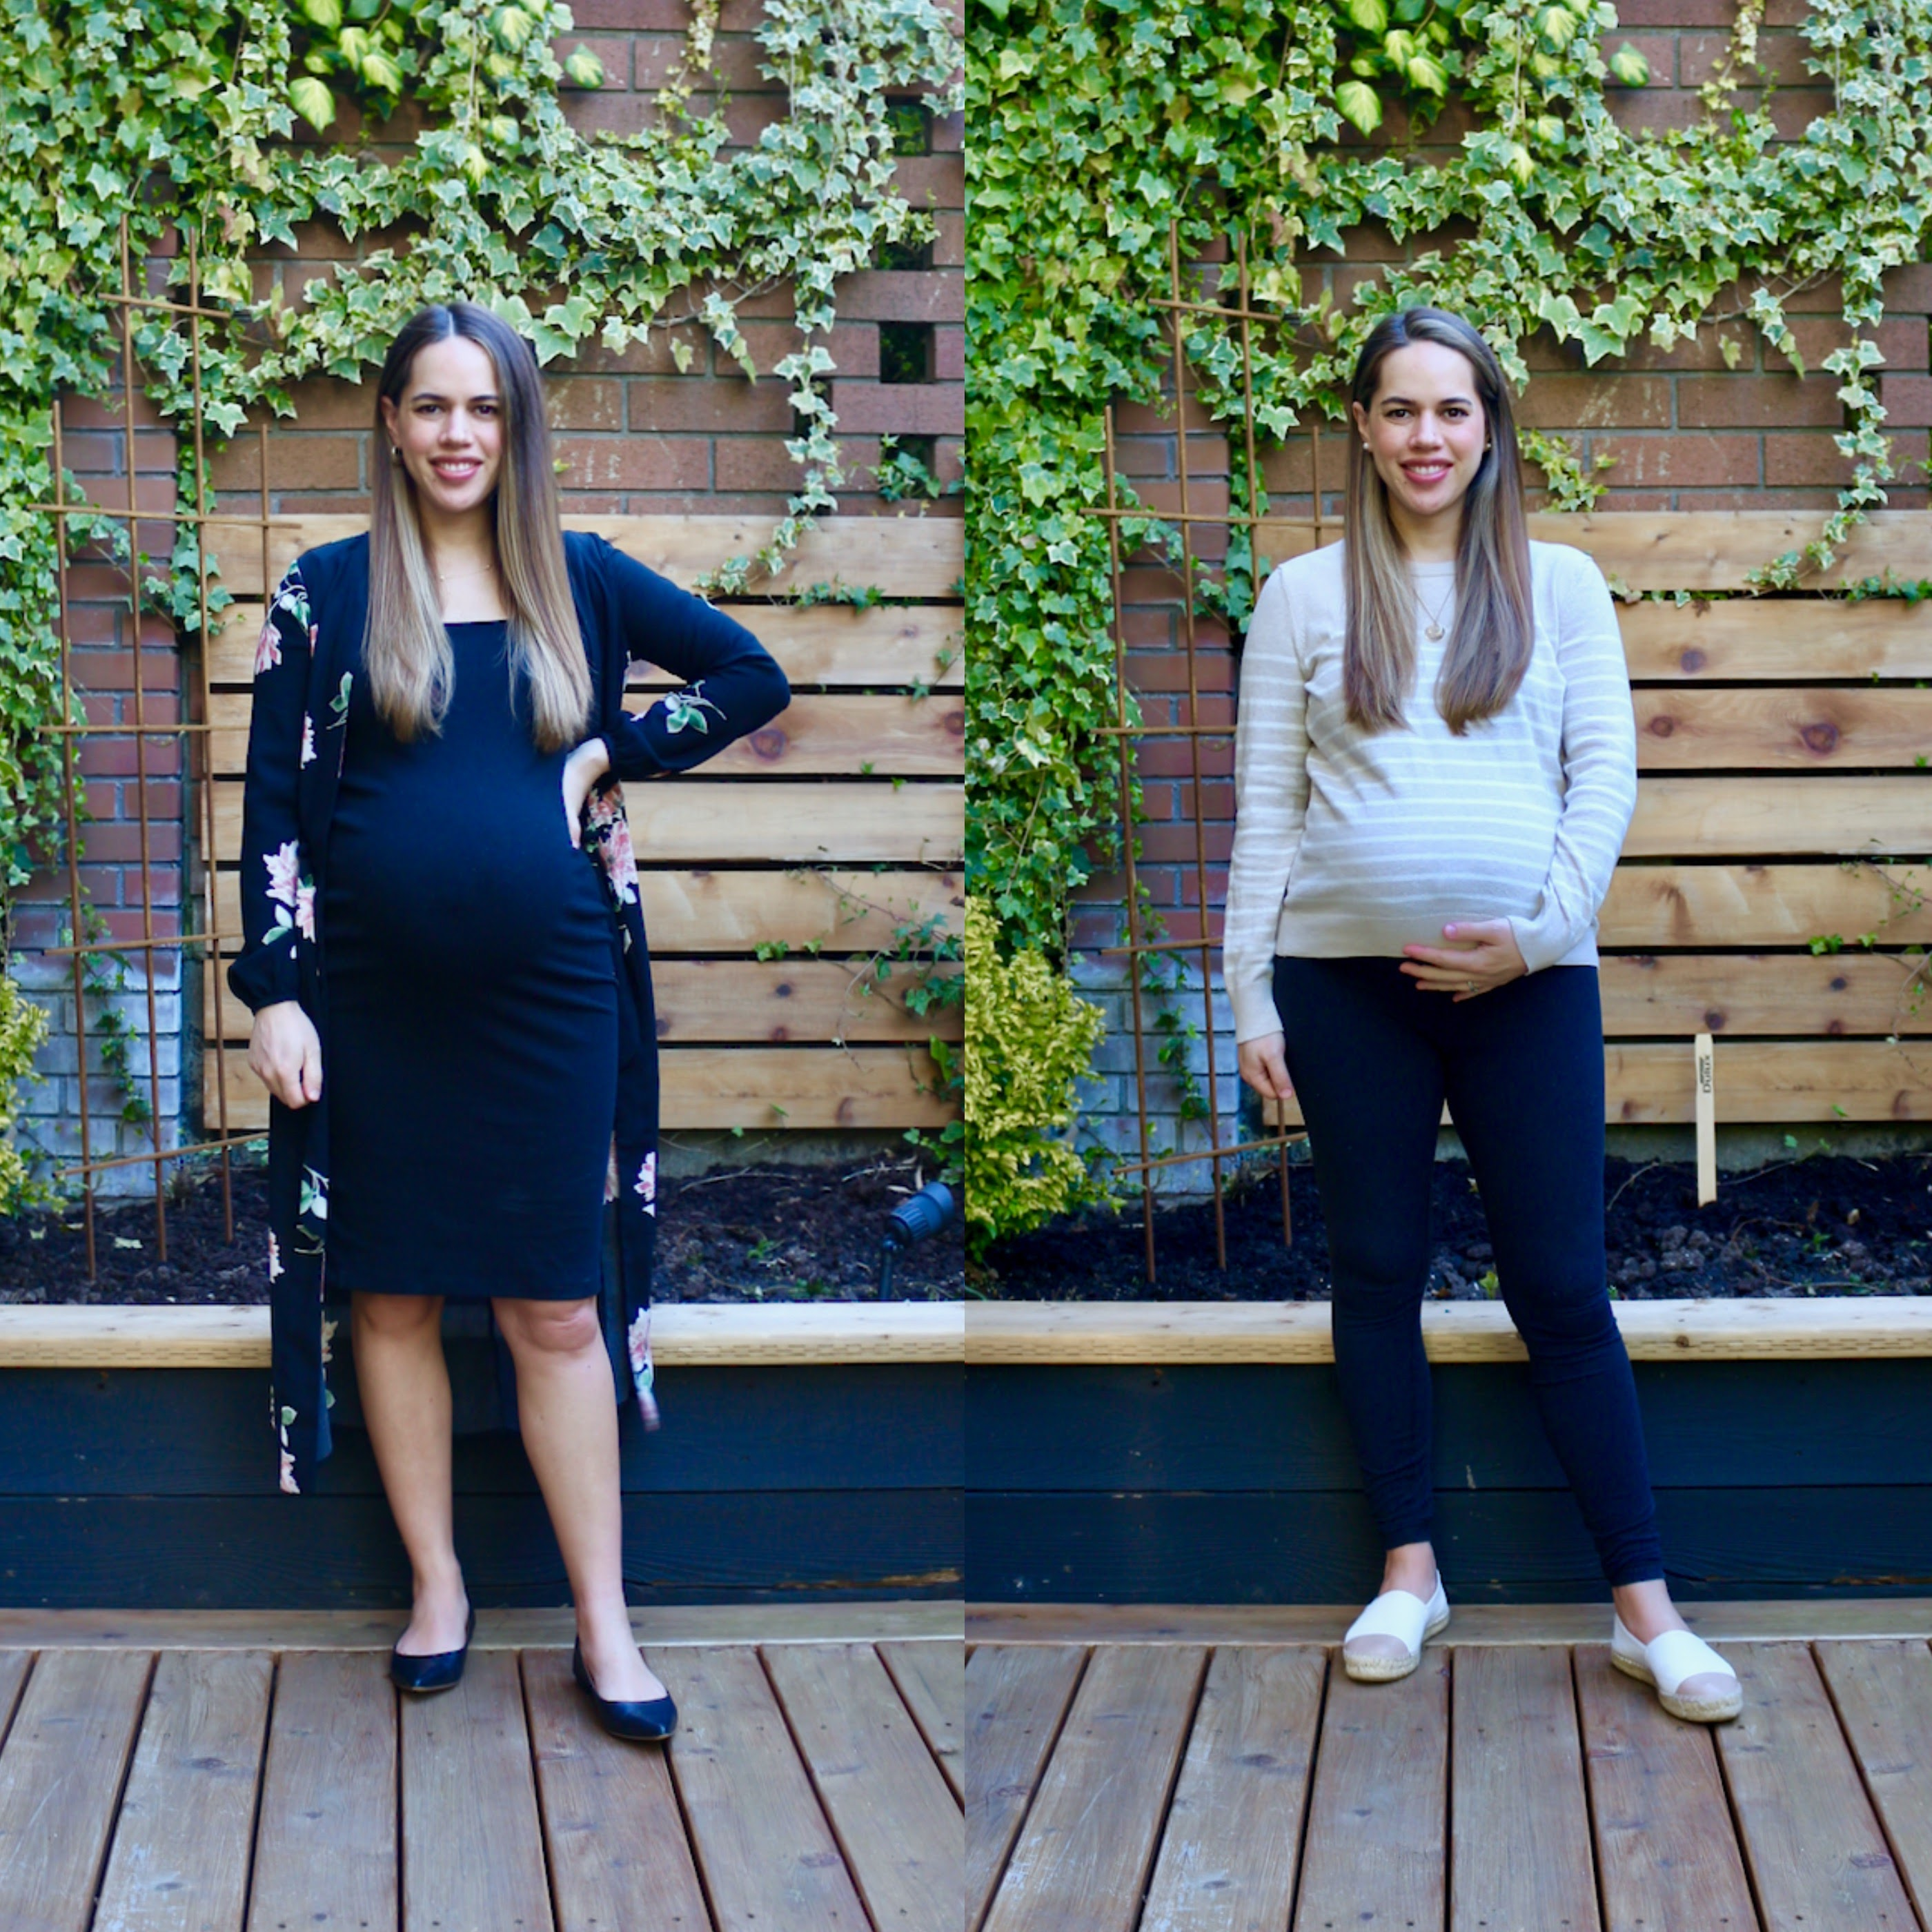 Jules in Flats - What I Wore to Work in April (Business Casual Workwear on a Budget) Week 2